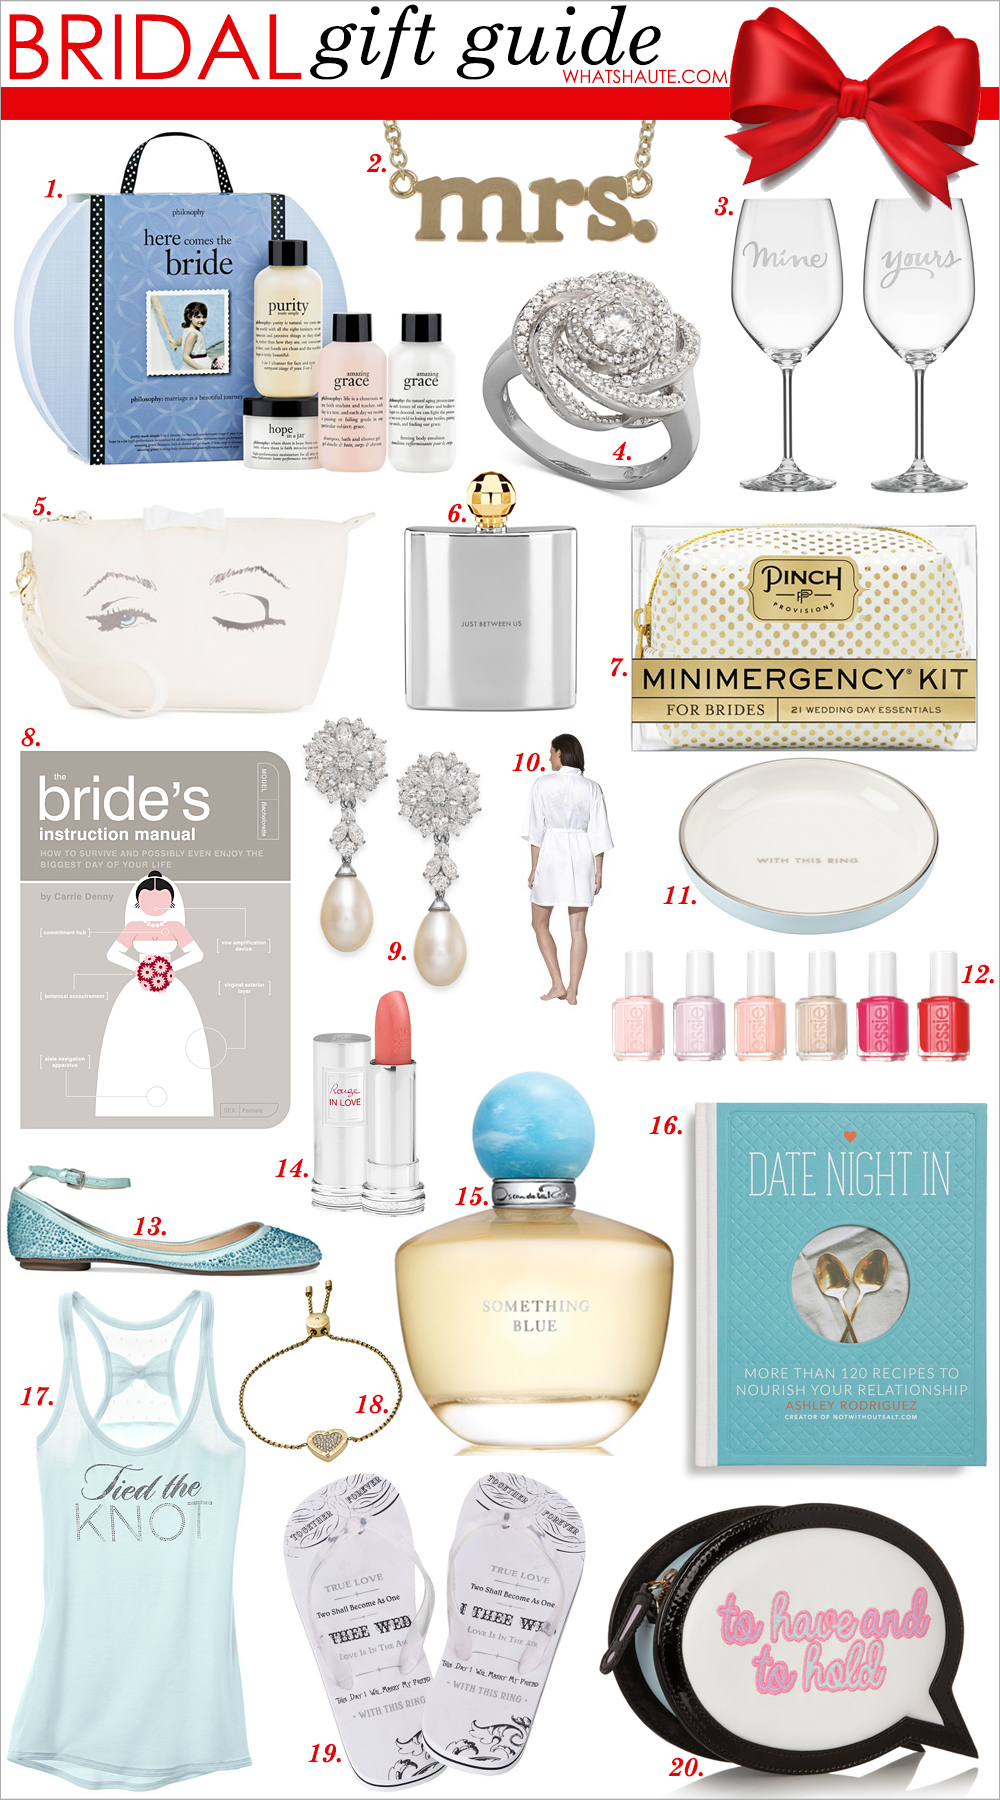 "Holiday 2015 - Bridal Gift Guide: philosophy 'here comes the bride' set, Jennifer Meyer ""Mrs."" Pendant Necklace, kate spade new york 'yours & mine' crystal wine glasses, Wrapped in Love™ Diamond Right Hand Ring, 14k White Gold Diamond Pave Knot Ring (1 ct. t.w.), Blue by Betsey Johnson Veil Cosmetics Case, kate spade new york Two of a Kind Between Us Faceted Flask, Pinch Provisions Minimergency Kit for Brides, The Bride's Instruction Manual: How to Survive and Possibly Even Enjoy the Biggest Day of Your Life, Arabella Cultured Freshwater Pearl and Swarovski Zirconia Drop Earrings in Sterling Silver (8mm), Gilligan & O'Malley® Women's Bridal Robe, kate spade new york 'take the cake' ring dish, essie bridal 2015 Nail Polish collection (tying the knotie / hubby for dessert / worth the wait / brides to be / brides no grooms / happy wife happy life), Blue by Betsey Johnson Joy Evening Flats, Online Only - Lancôme Bridal Collection Rouge In Love Lipcolor - Bonheur, Oscar de la Renta Something Blue Eau de Parfum Spray, 1.7 oz, 'Date Night In' Cookbook for Two, Dream Angels Bridal Tank, Michael Kors Gold-Tone Crystal Heart Slider Bracelet, Wedding Flip Flops, Sophia Webster To Have And To Hold Embroidered Leather Clutch"